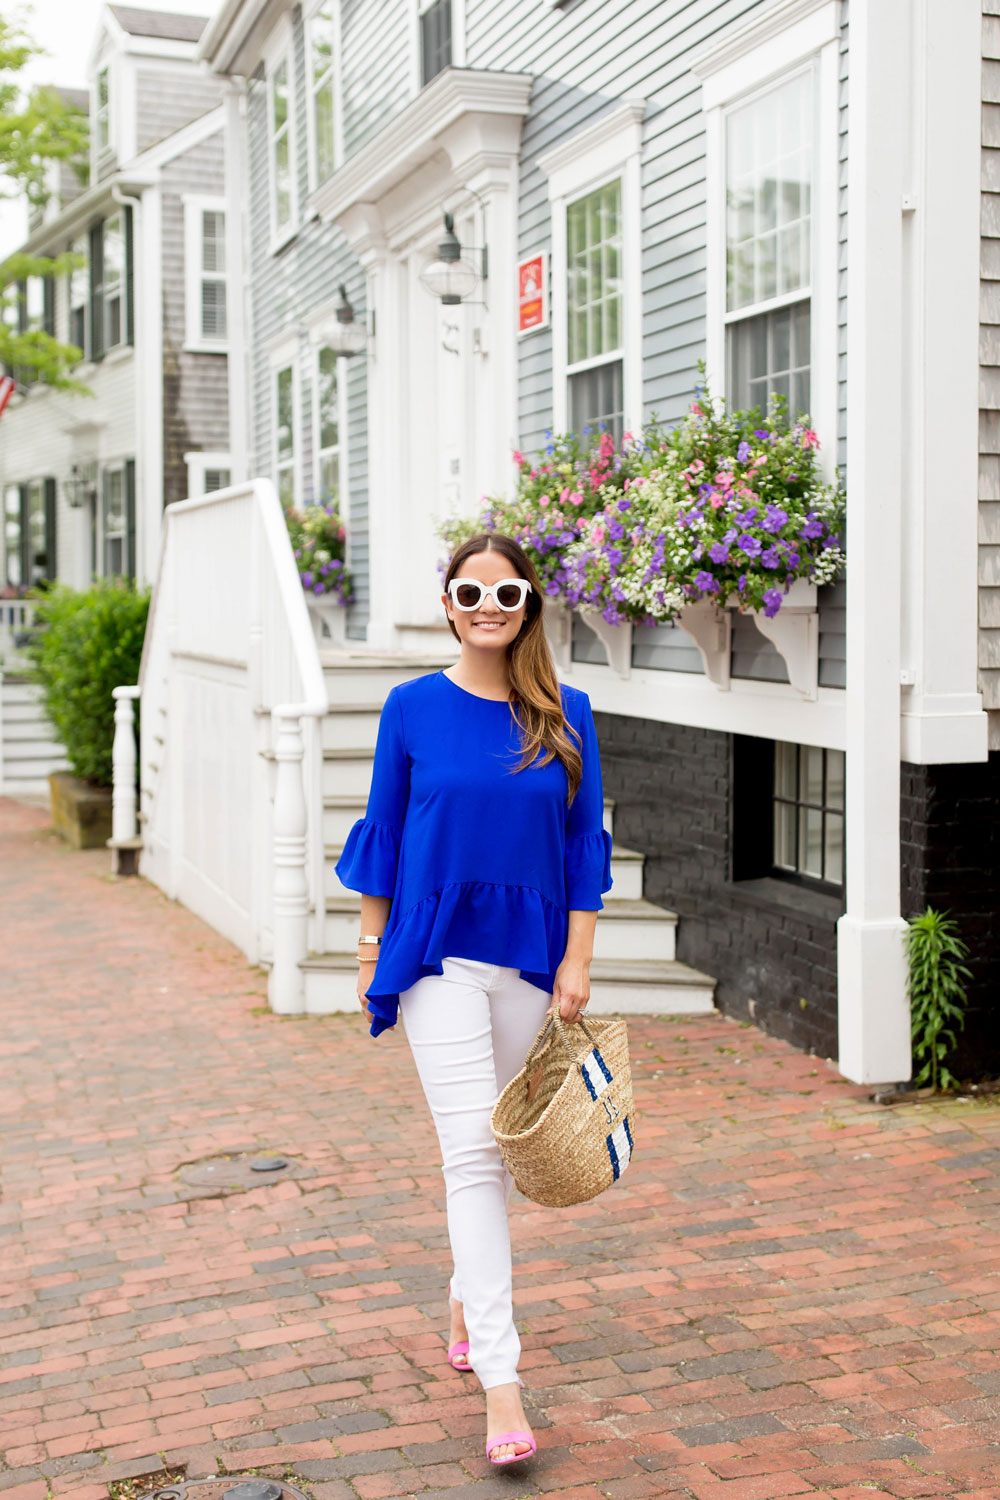 Nantucket Travel Blog